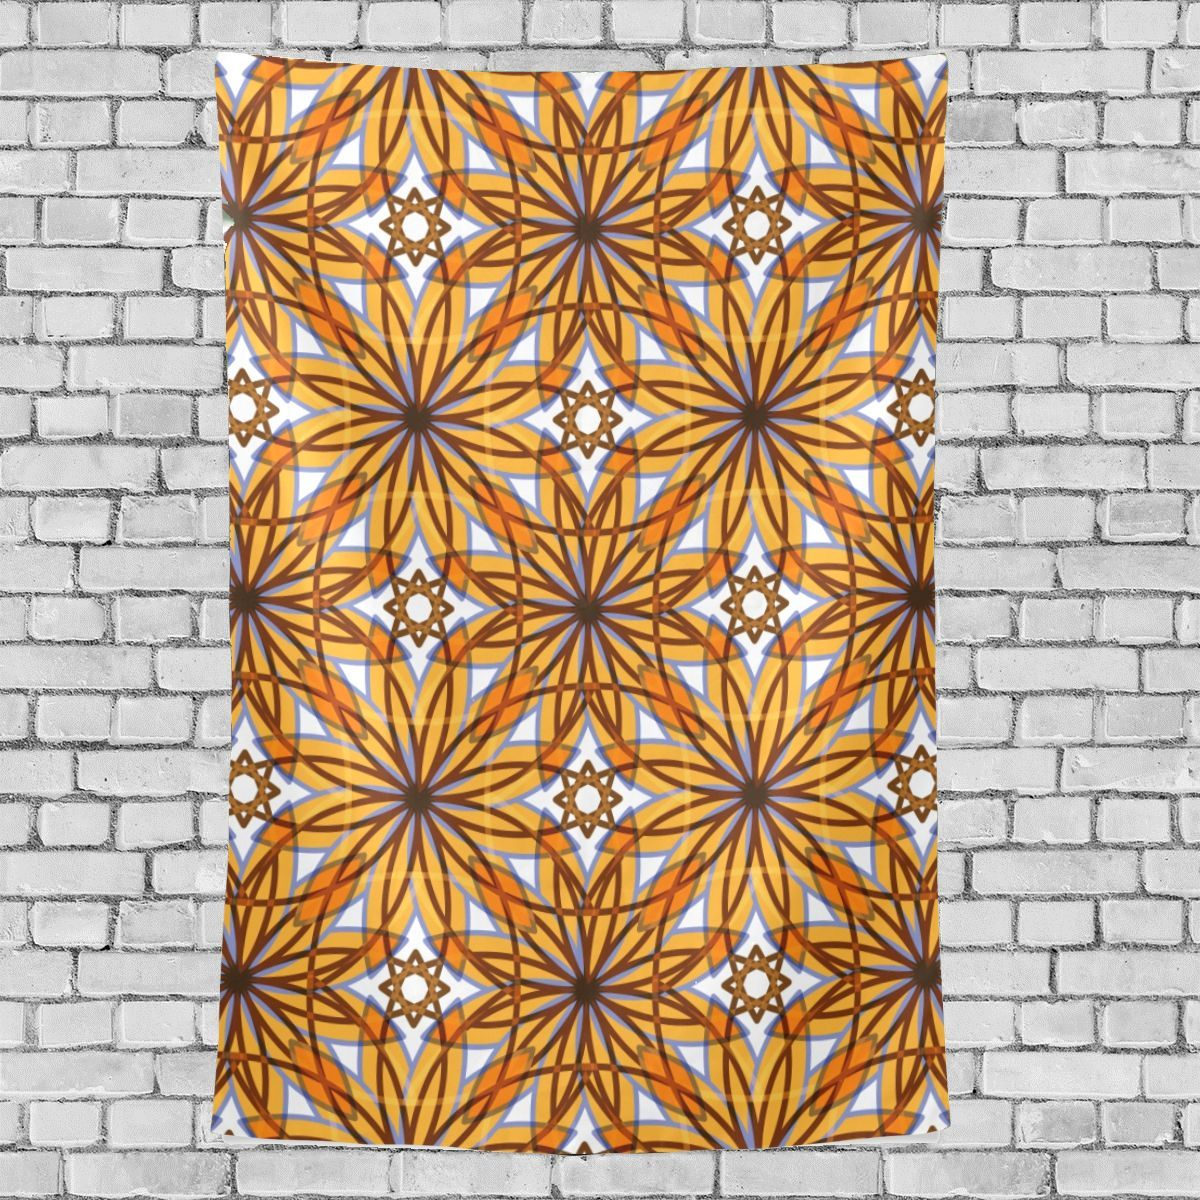 Edgy Art Wall Decor Scarlet Yellow Streaks Art Pattern